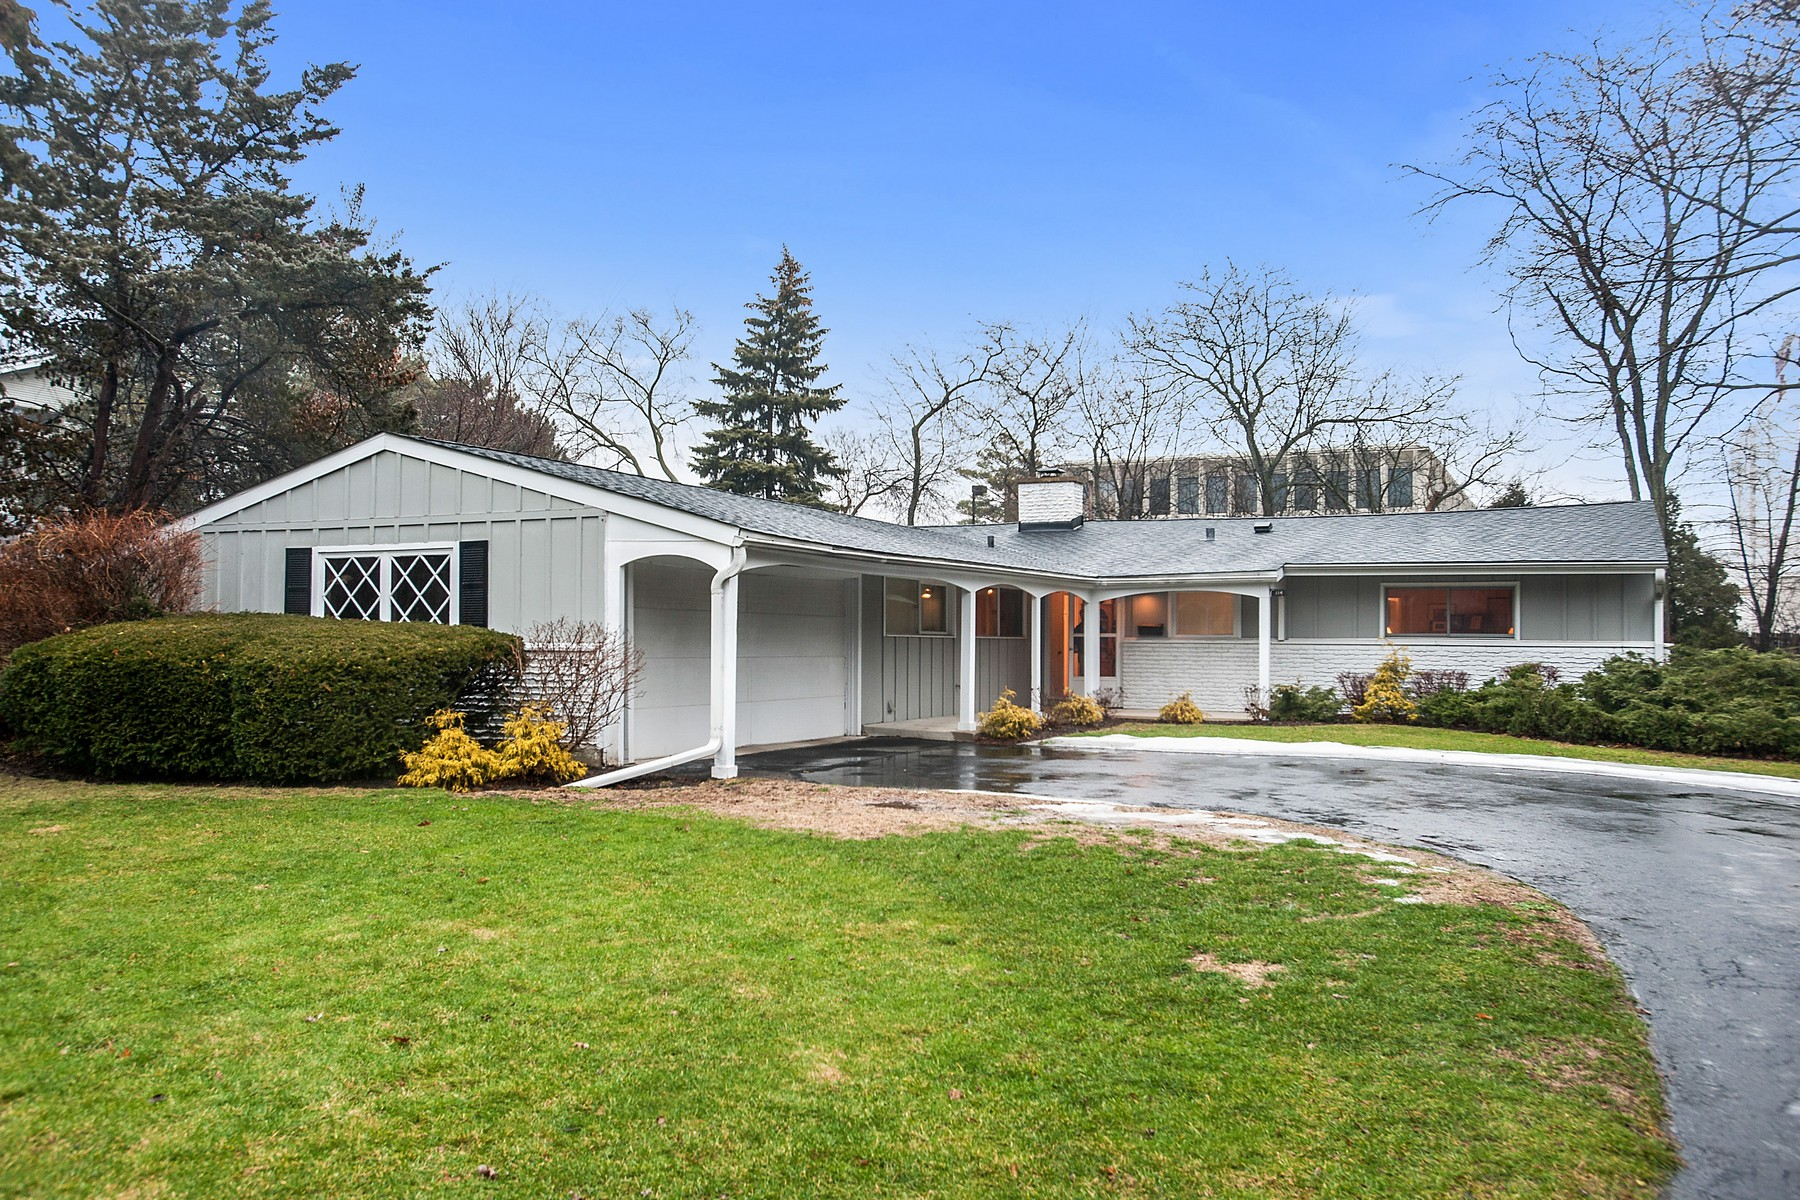 Single Family Home for Sale at Spacious and Light Filled Ranch 114 Lockerbie Lane Wilmette, Illinois, 60091 United States